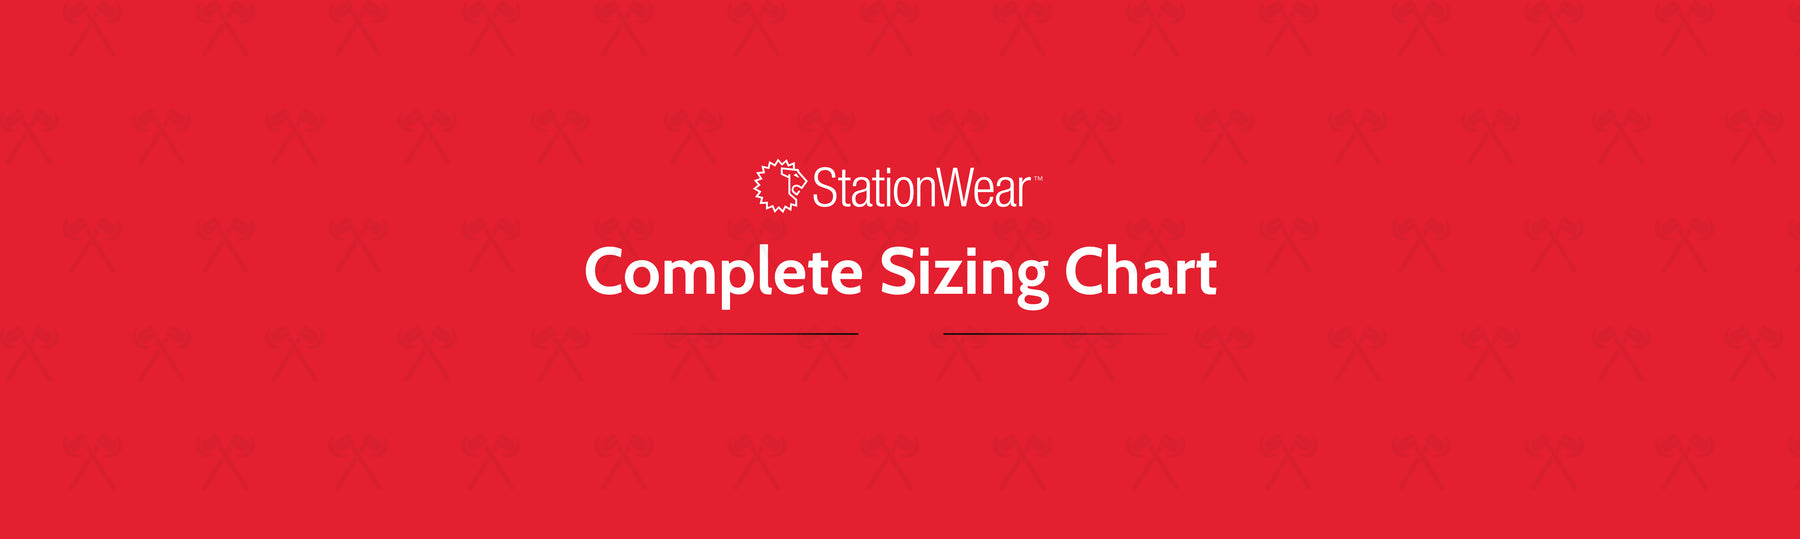 LION StationWear Sizing Chart